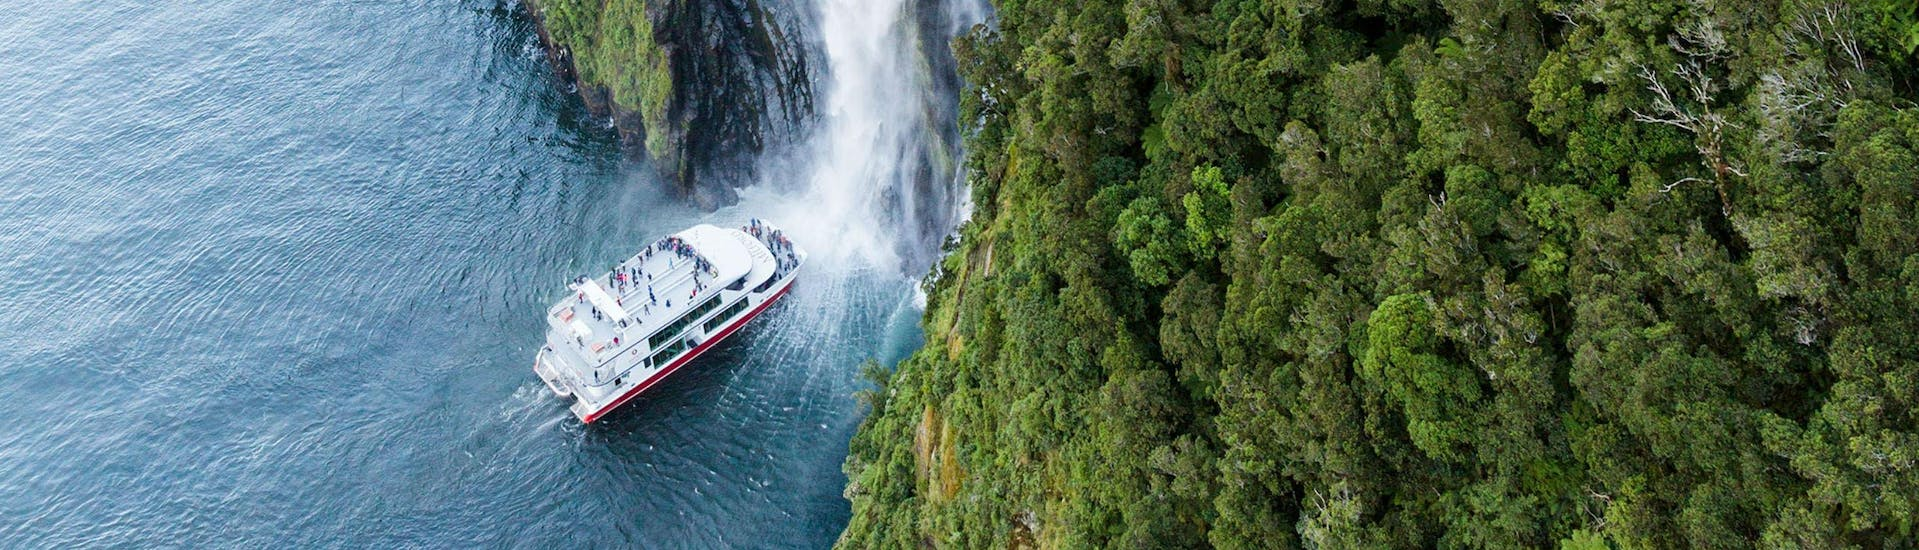 milford-sound-scenic-day-trip-from-te-anau-winter-southern-discoveries-hero3